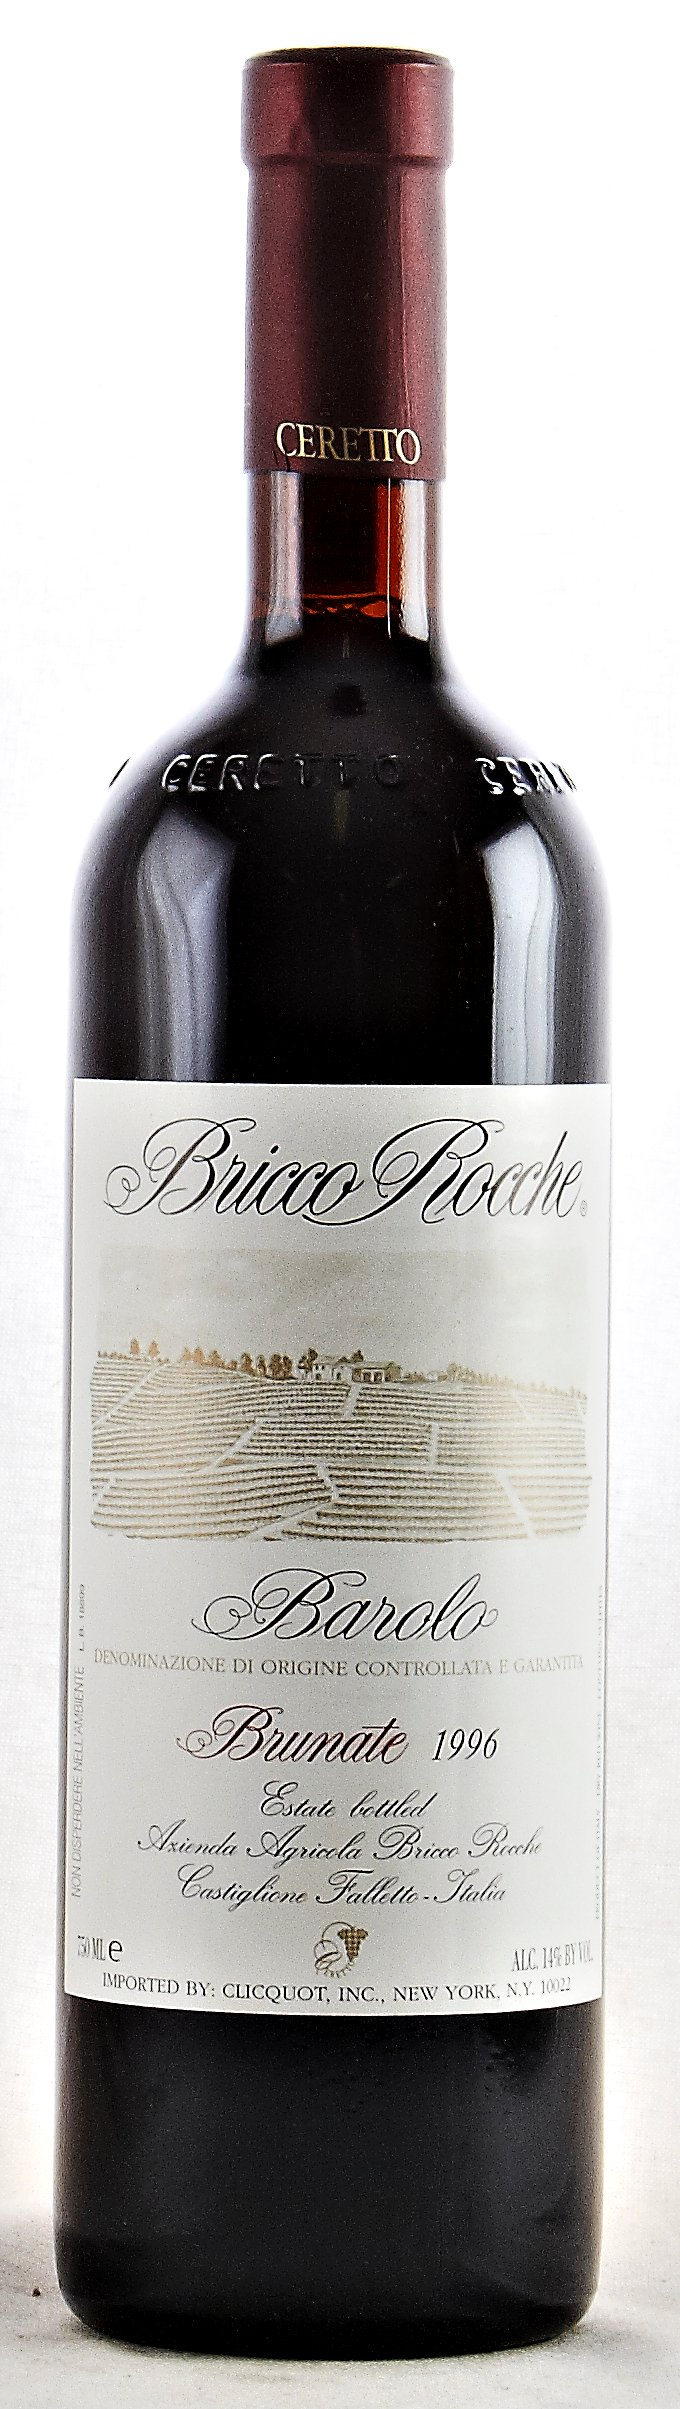 Barolo Brunate 2005 Bricco Rocche Barolo Brunate